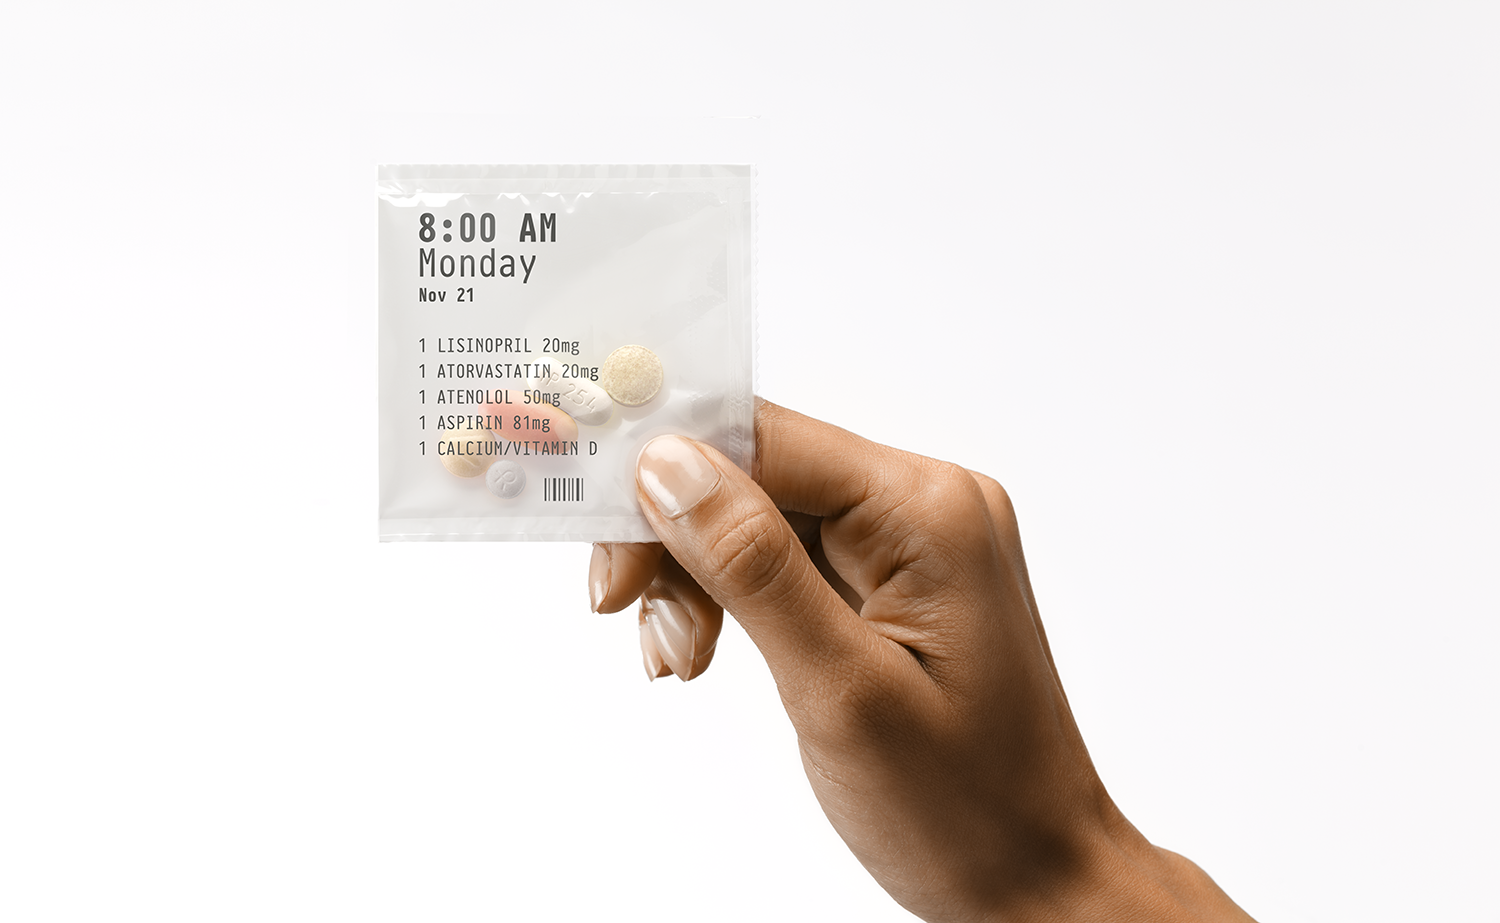 Digital health and the pharmacy of the future: 5 startups to watch